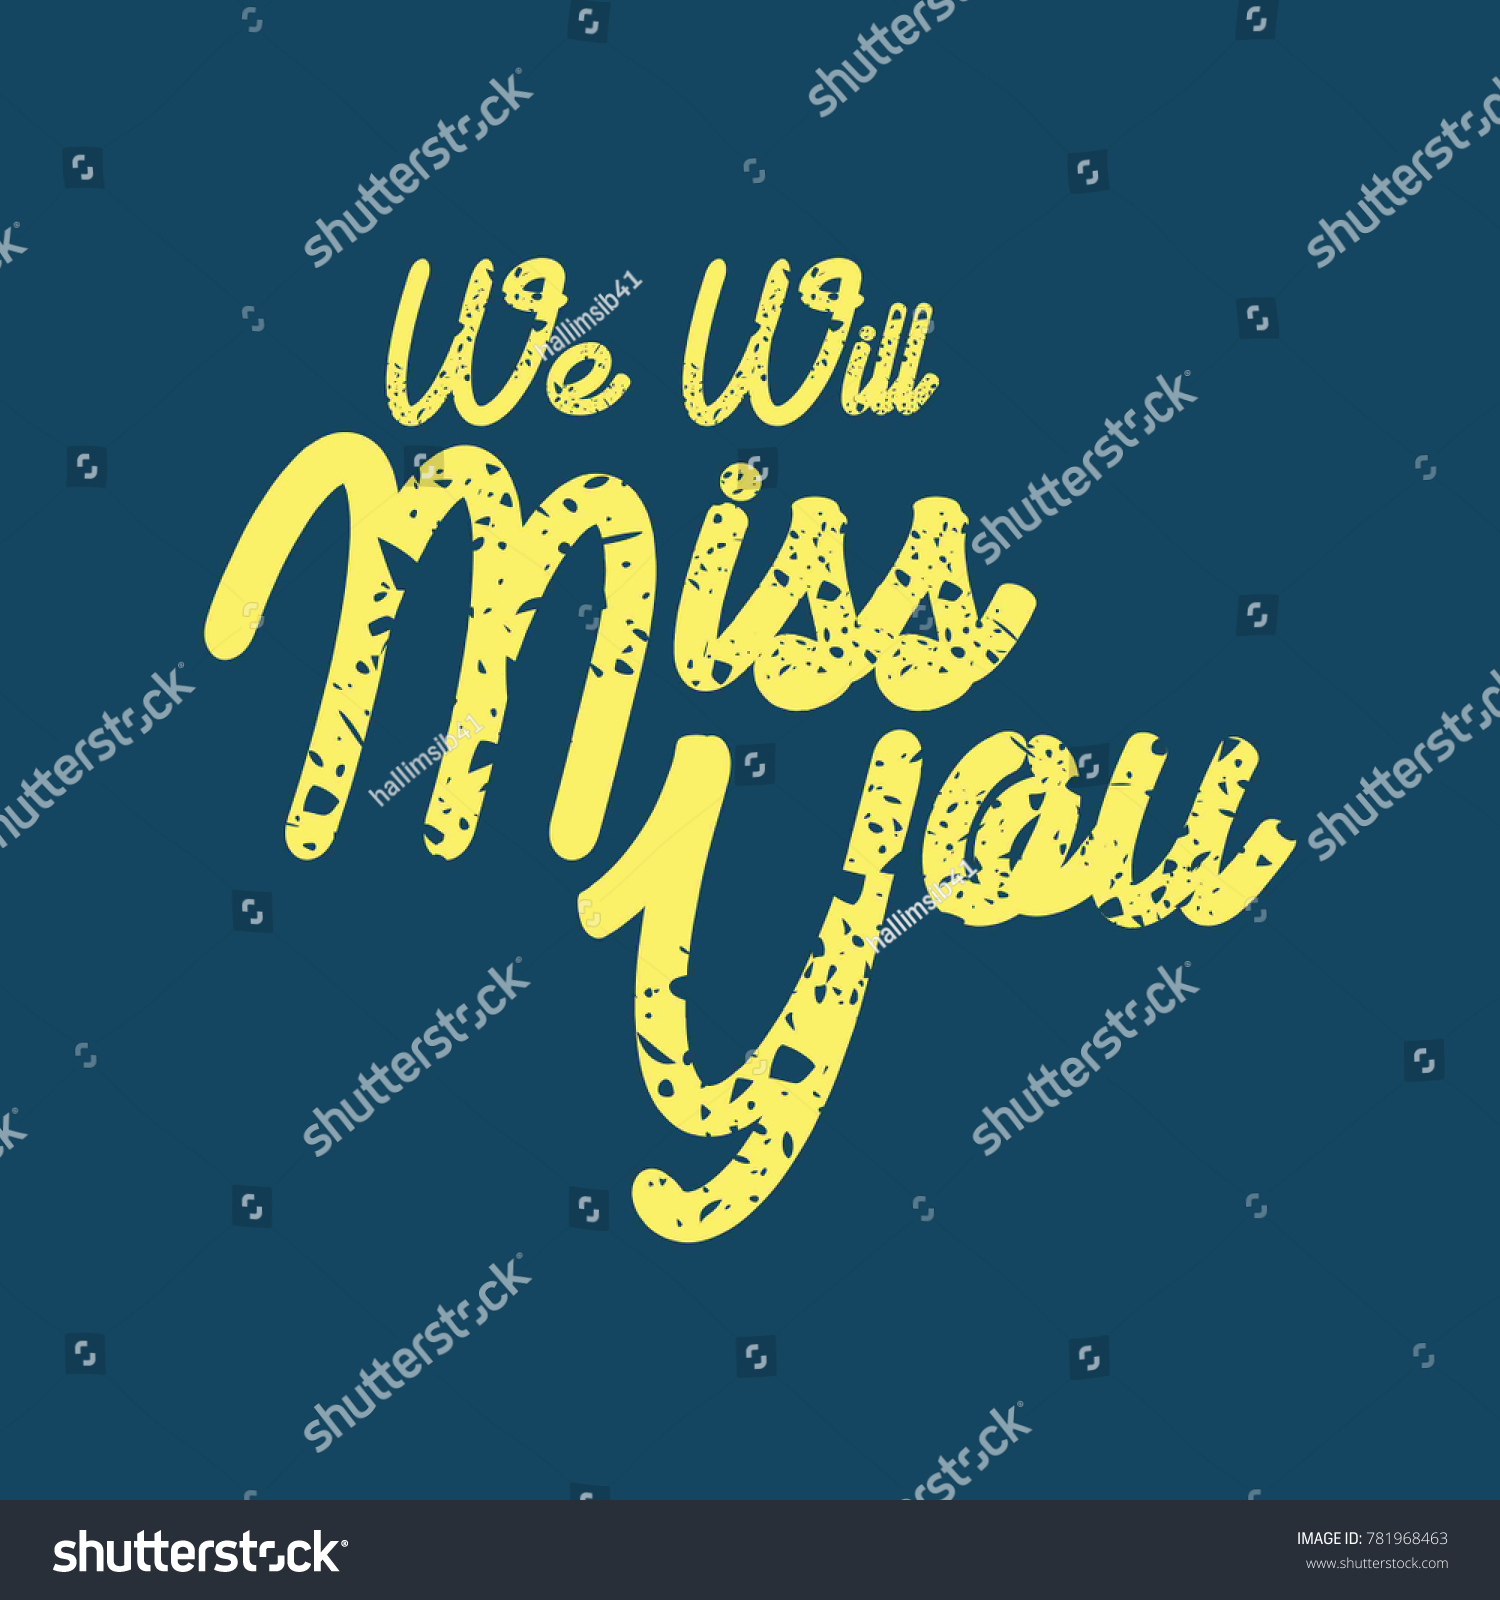 Farewell party card we will miss stock vector 781968463 shutterstock kristyandbryce Image collections